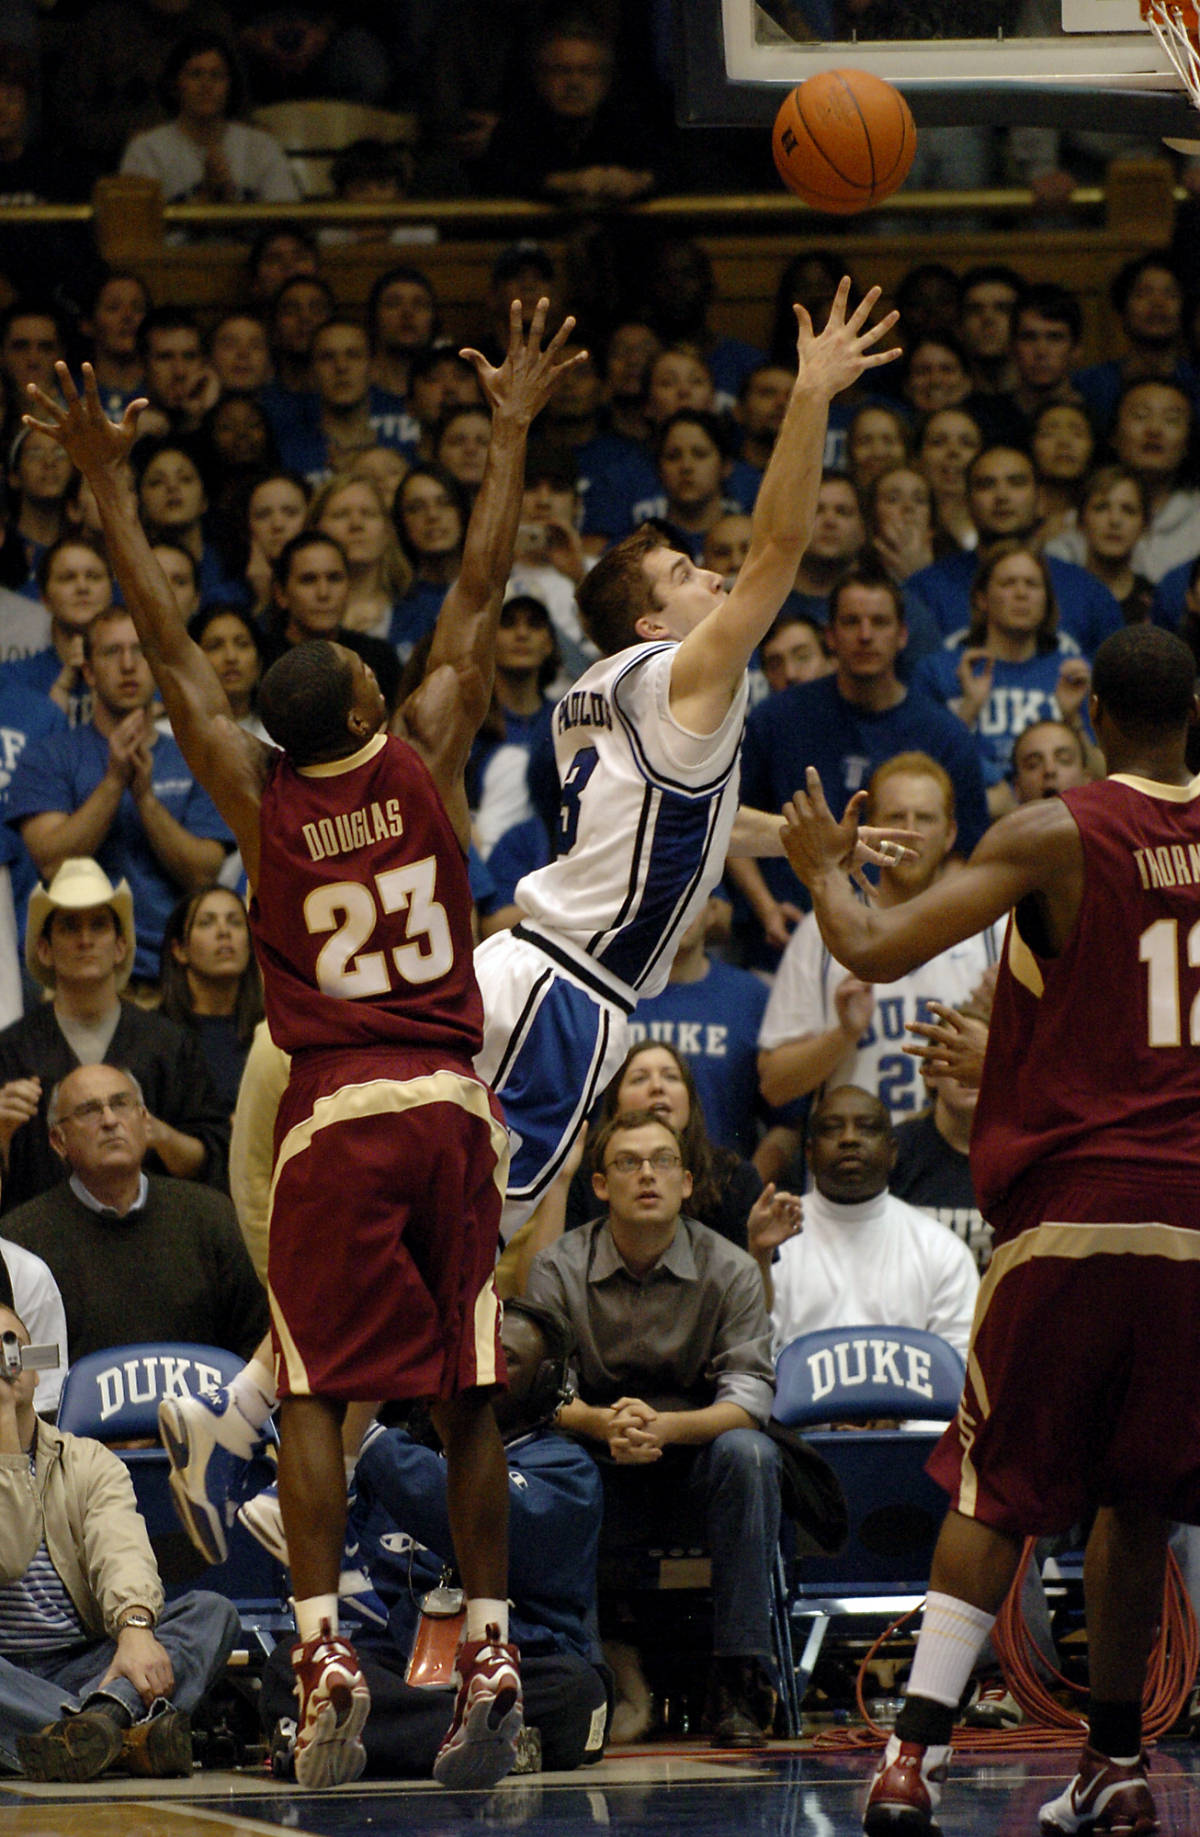 Duke's Greg Paulus, center, misses the lay-up over Florida State's Toney Douglas (23) in the last six seconds of a basketball game in Durham, N.C., on Sunday, Feb. 4, 2007. Paulus' missed lay-up led the sequence of three missed attempts before losing, 68-67, to Florida State in the final seconds. Paulus led his team with 23 points. (AP Photo/Sara D. Davis)